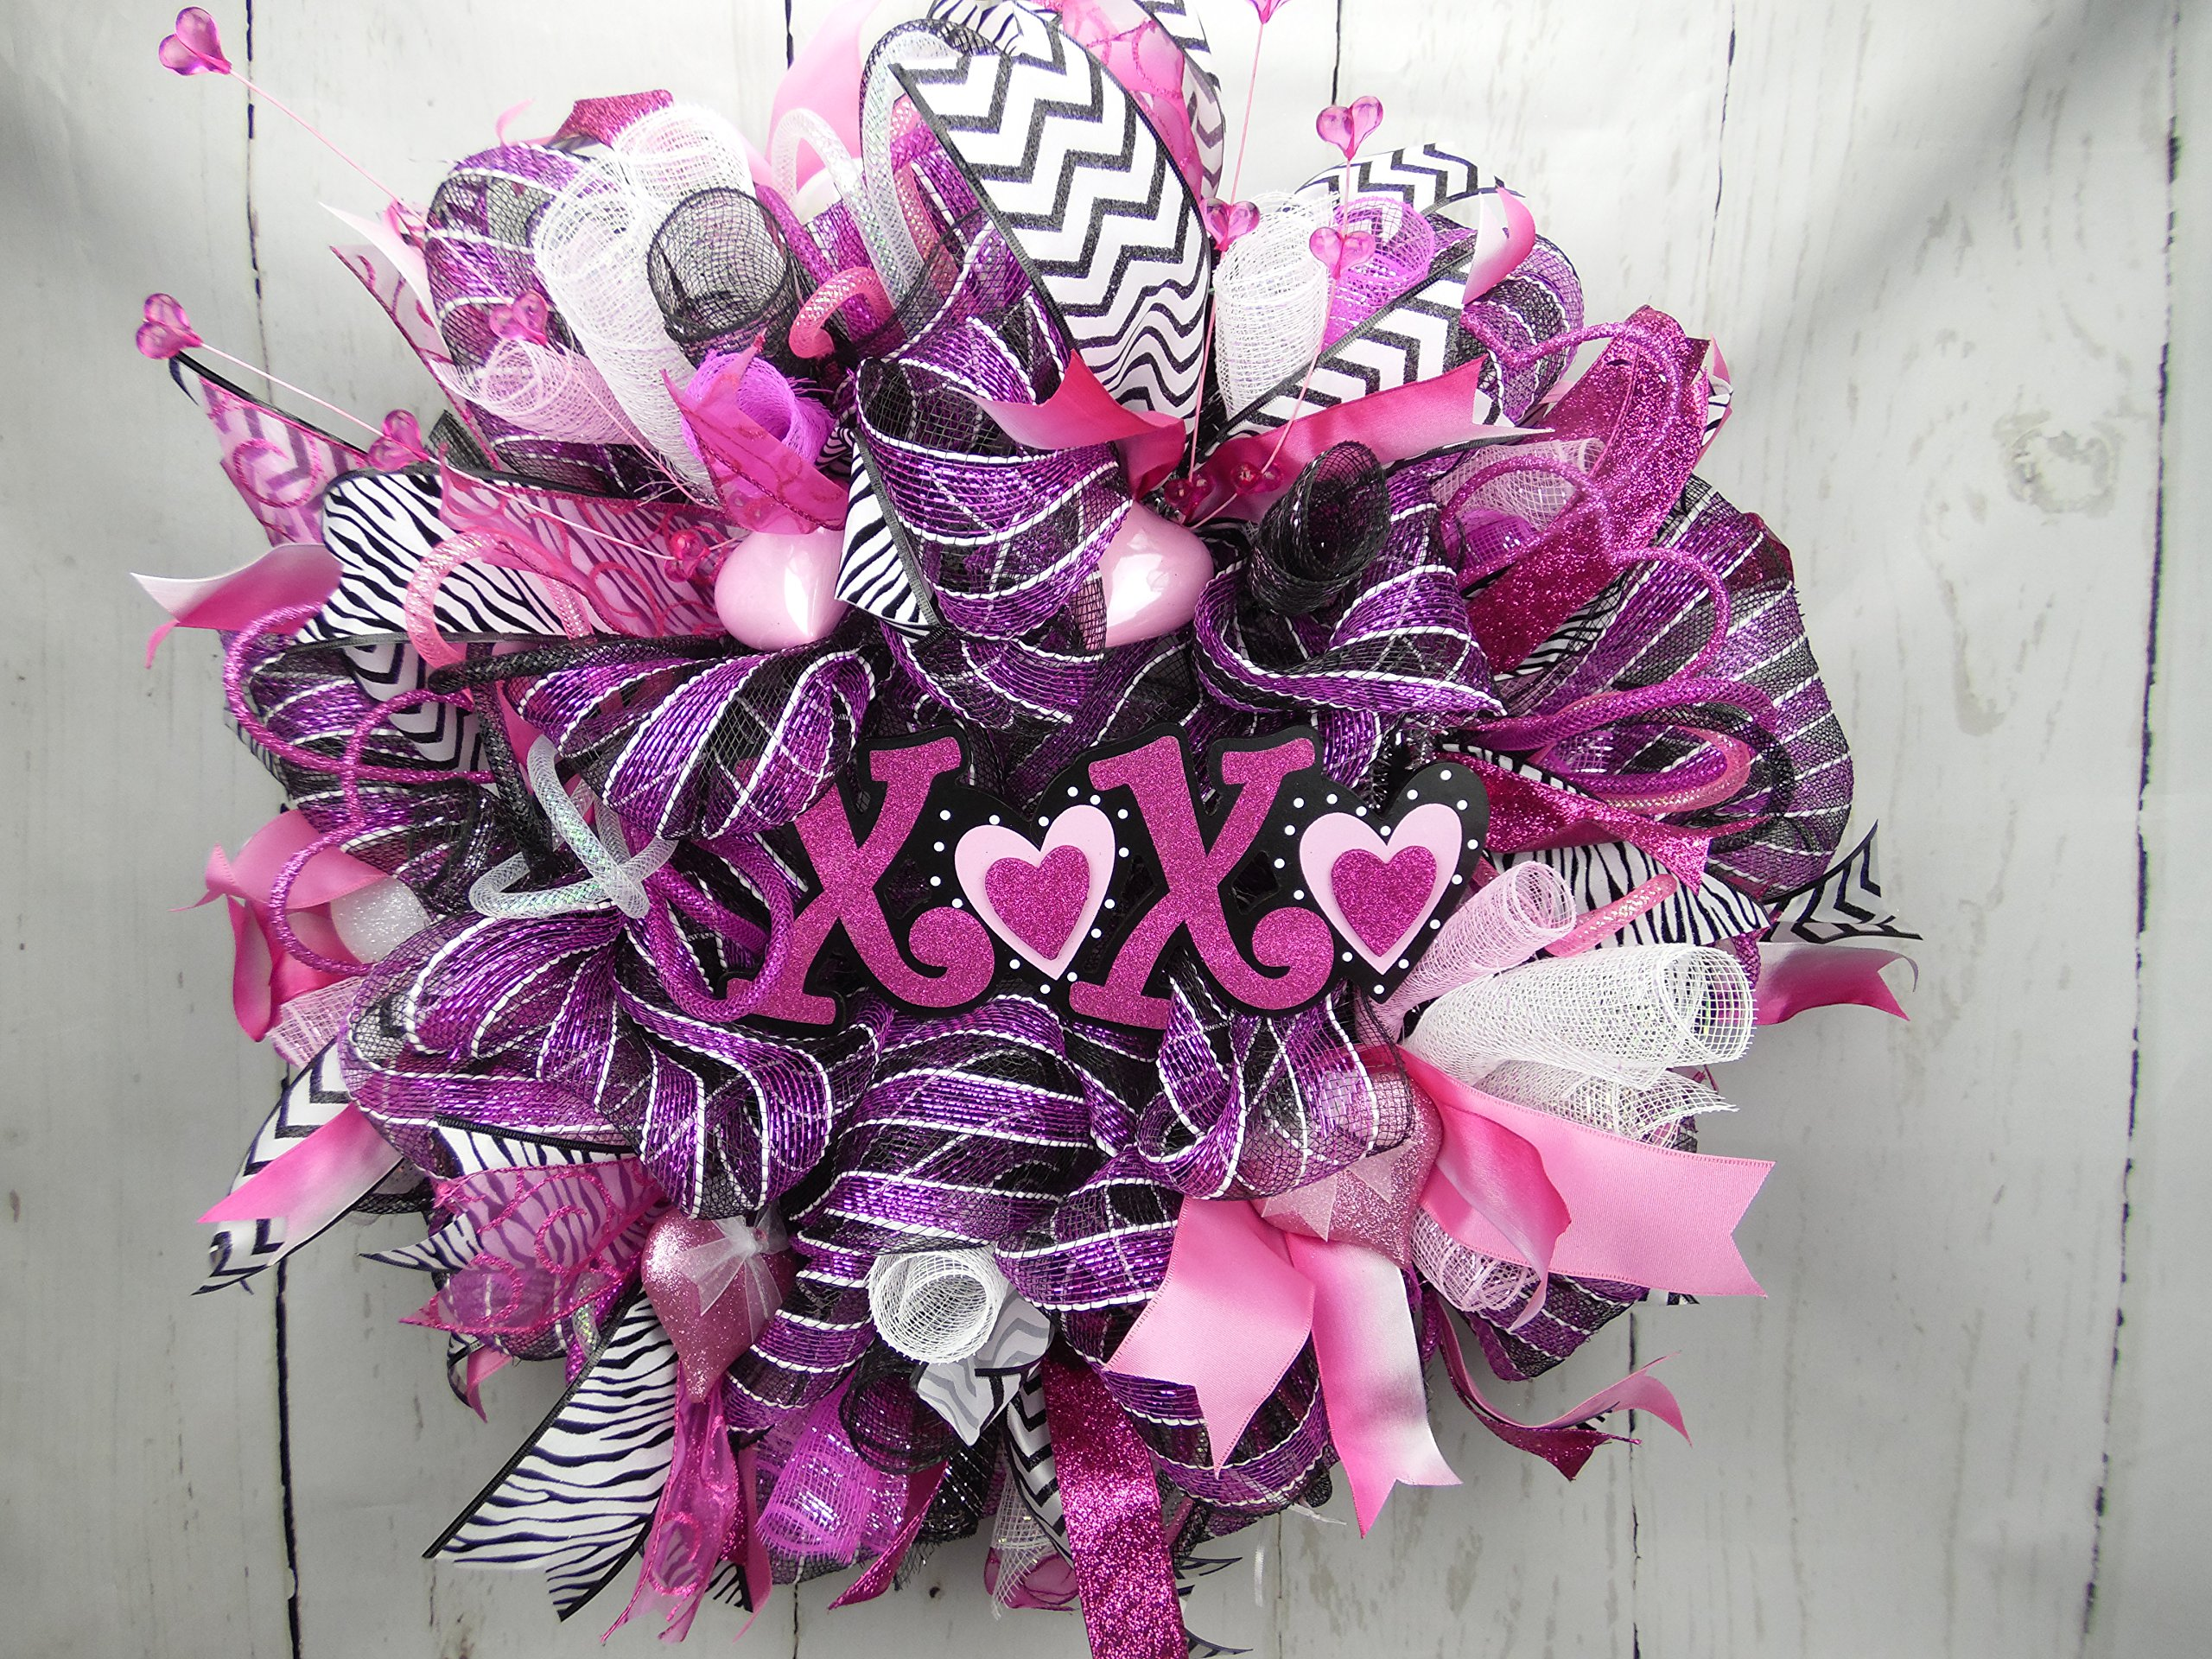 XOXO Valentines Day Wreath, Hugs and Kisses Decor, Pink Black and White Wreath, Valentines Day Decor, Love Wreath, Cupid Wreat